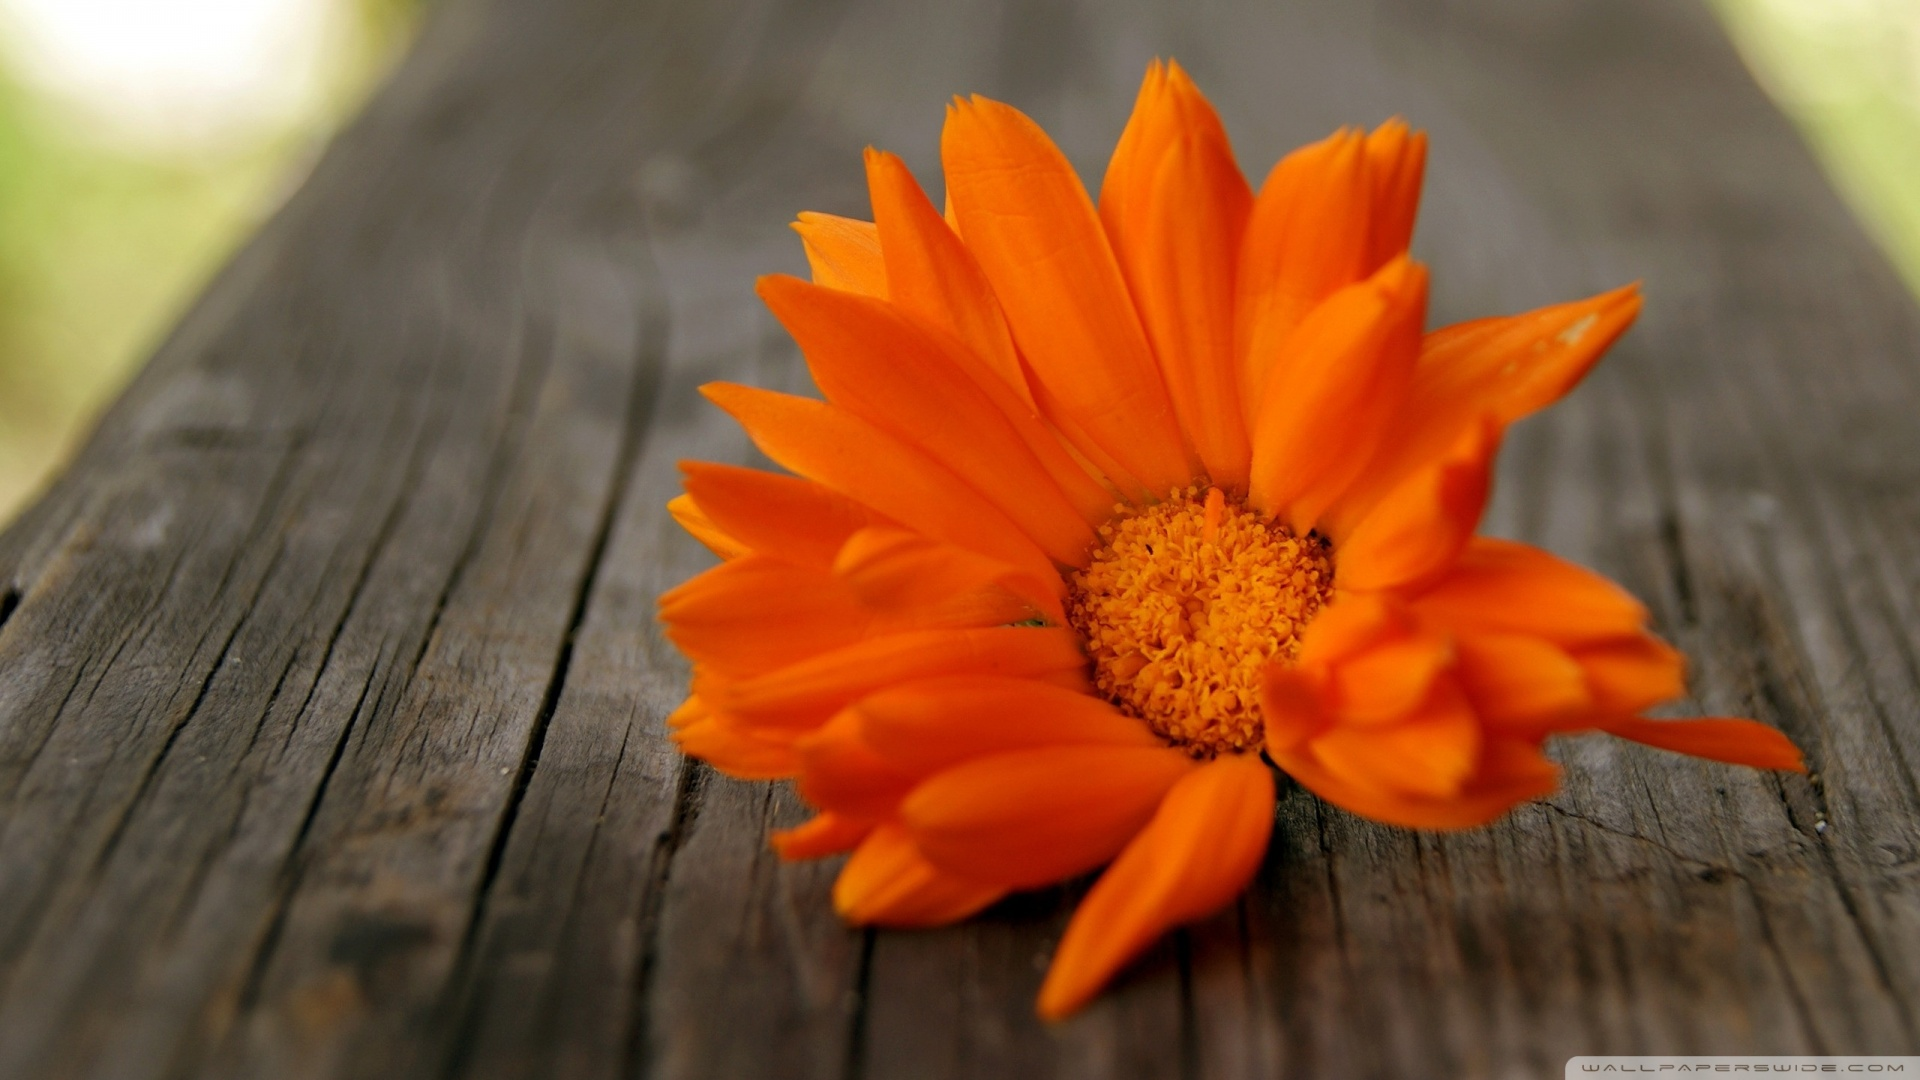 DOWNLOAD WALLPAPER Orange Flowers - FULL SIZE ...